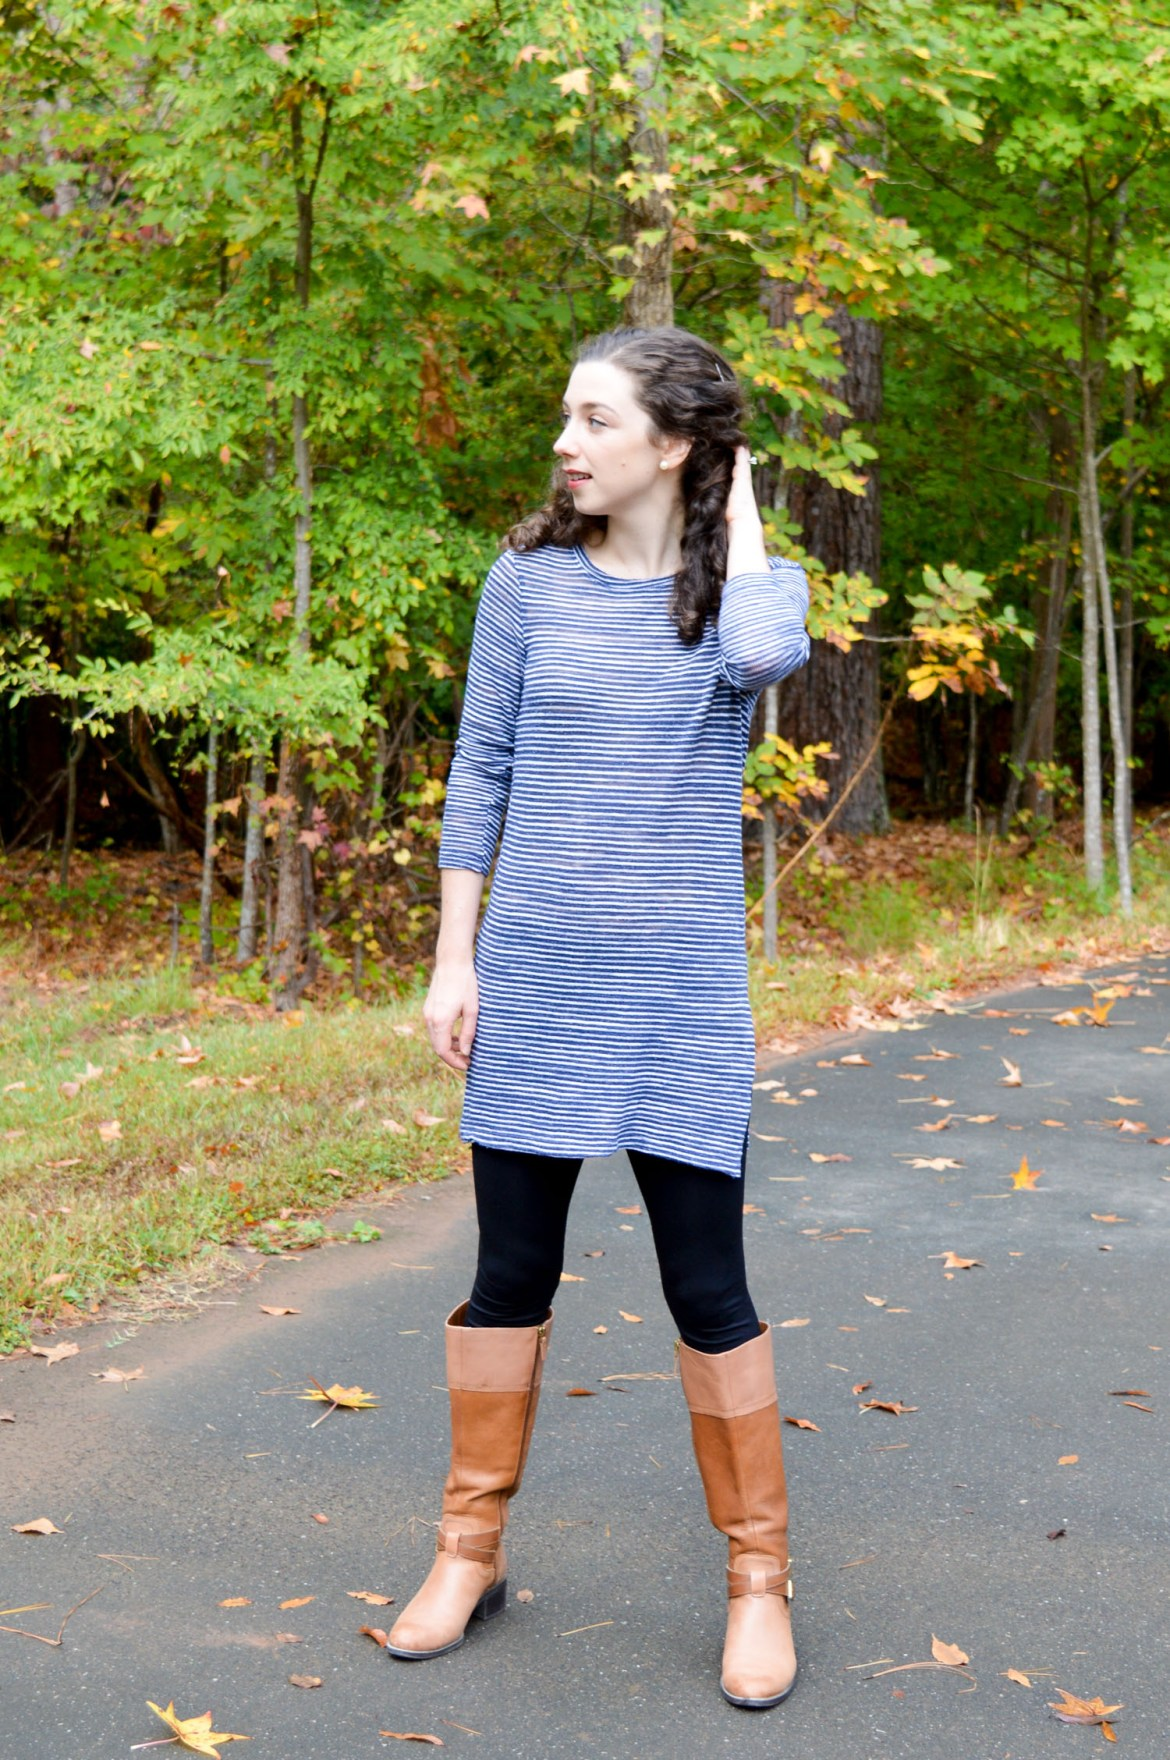 Leggings + Boots | The classic fall look